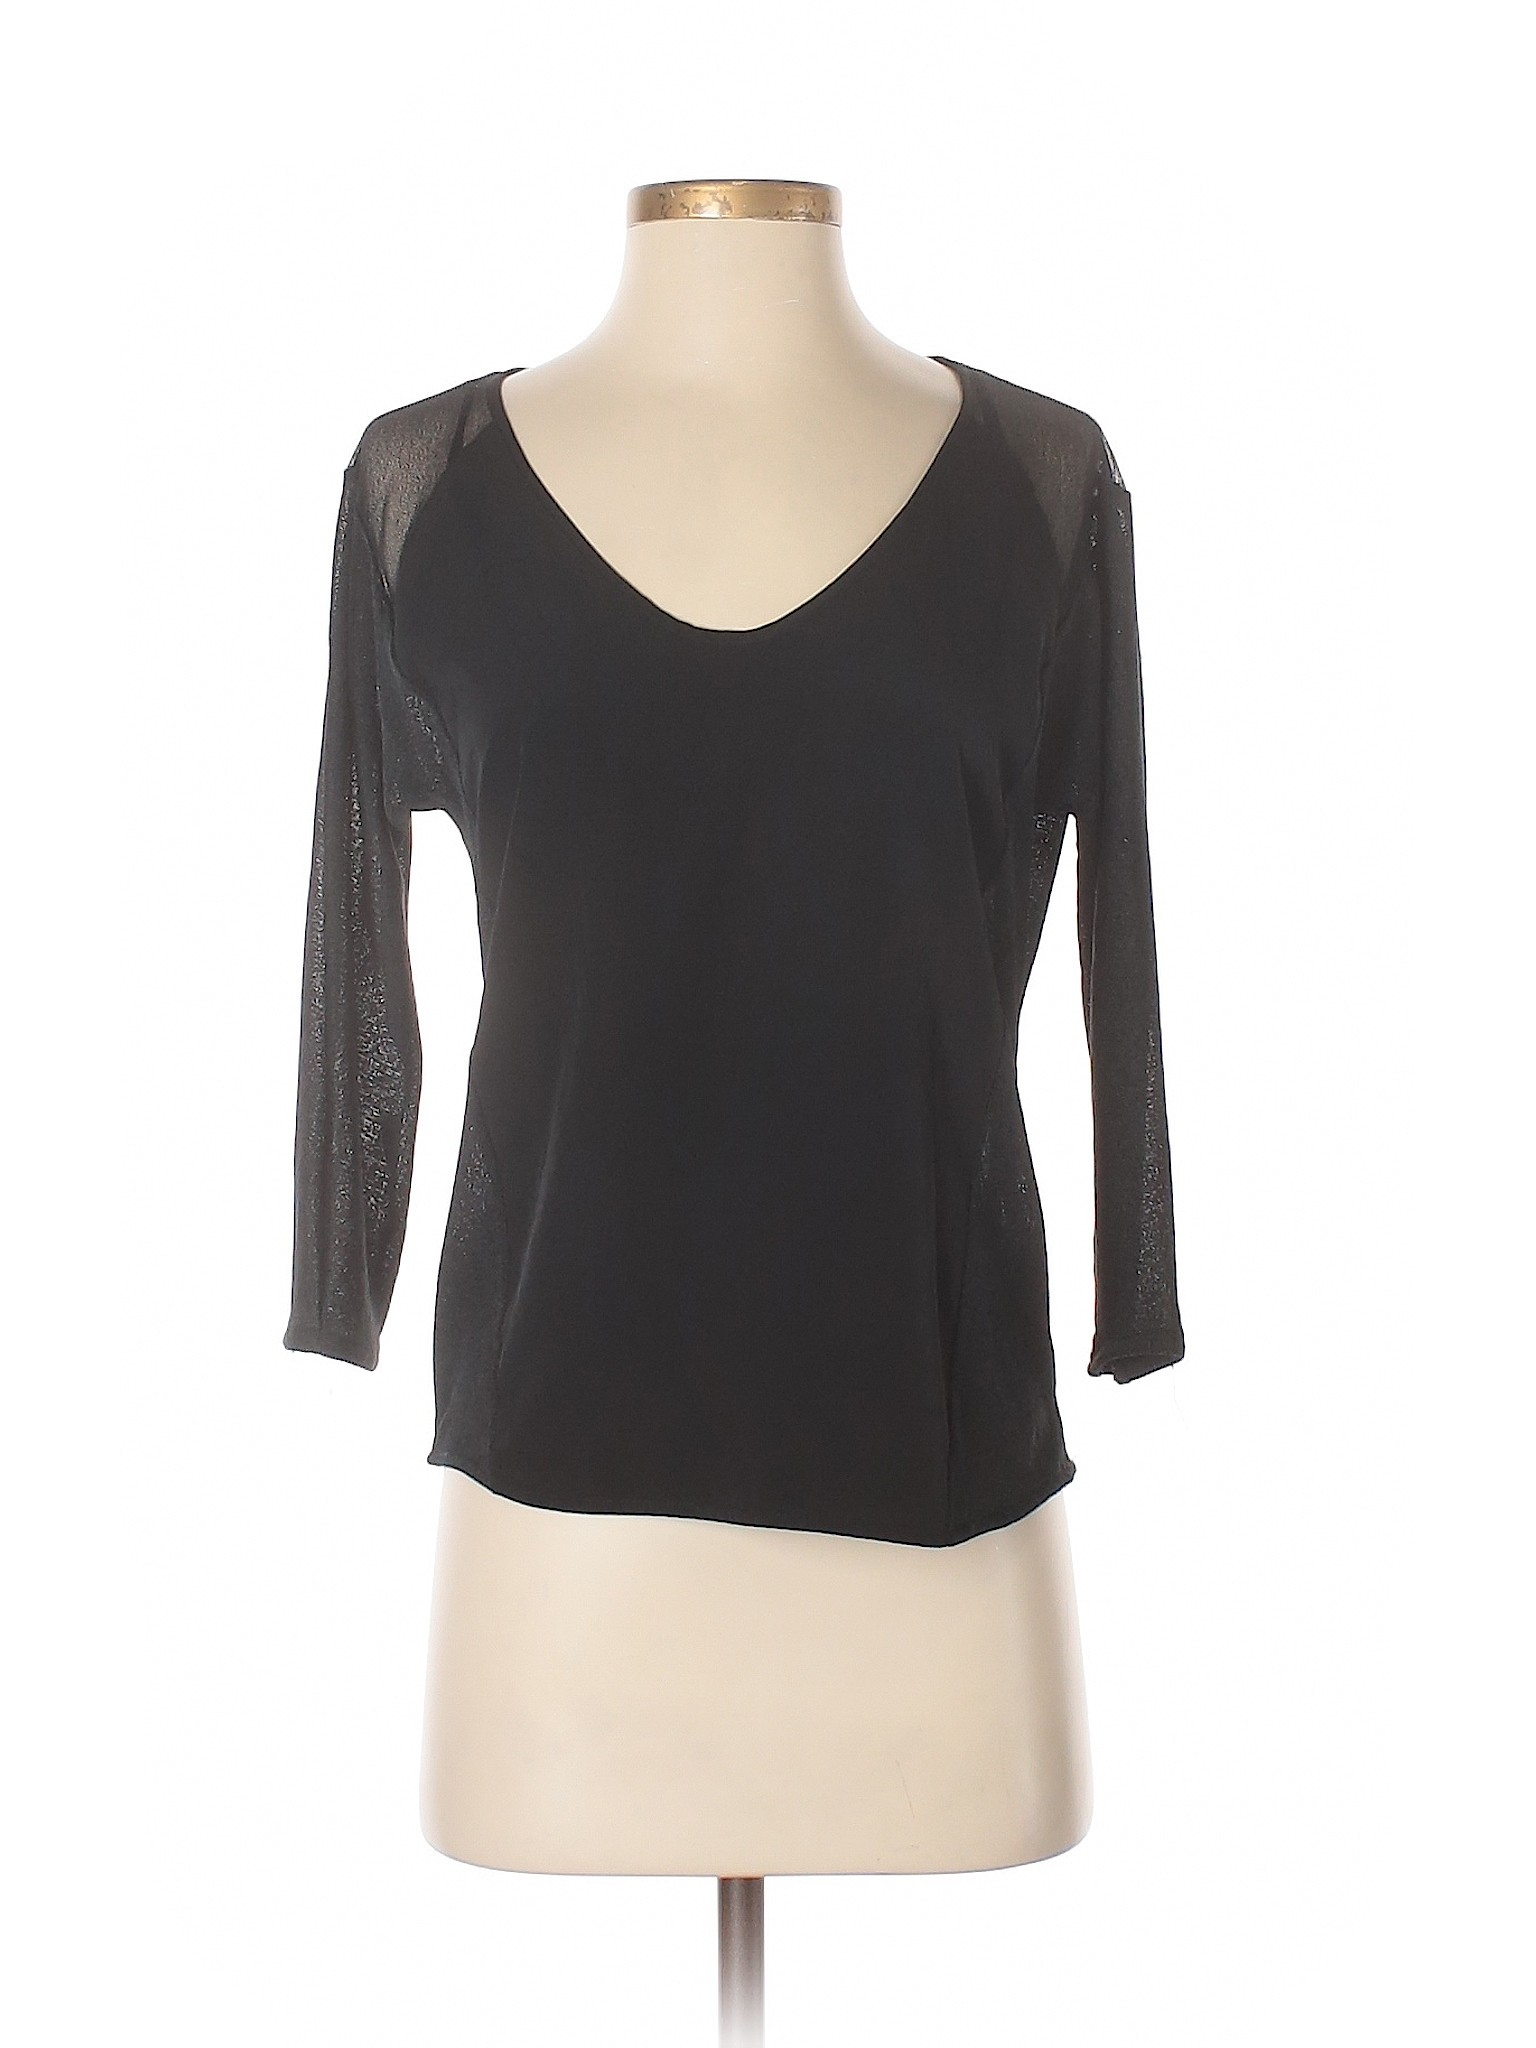 9c0501c7 3/4 Sleeve Top   Products   Tops, Sleeves, Second hand clothes